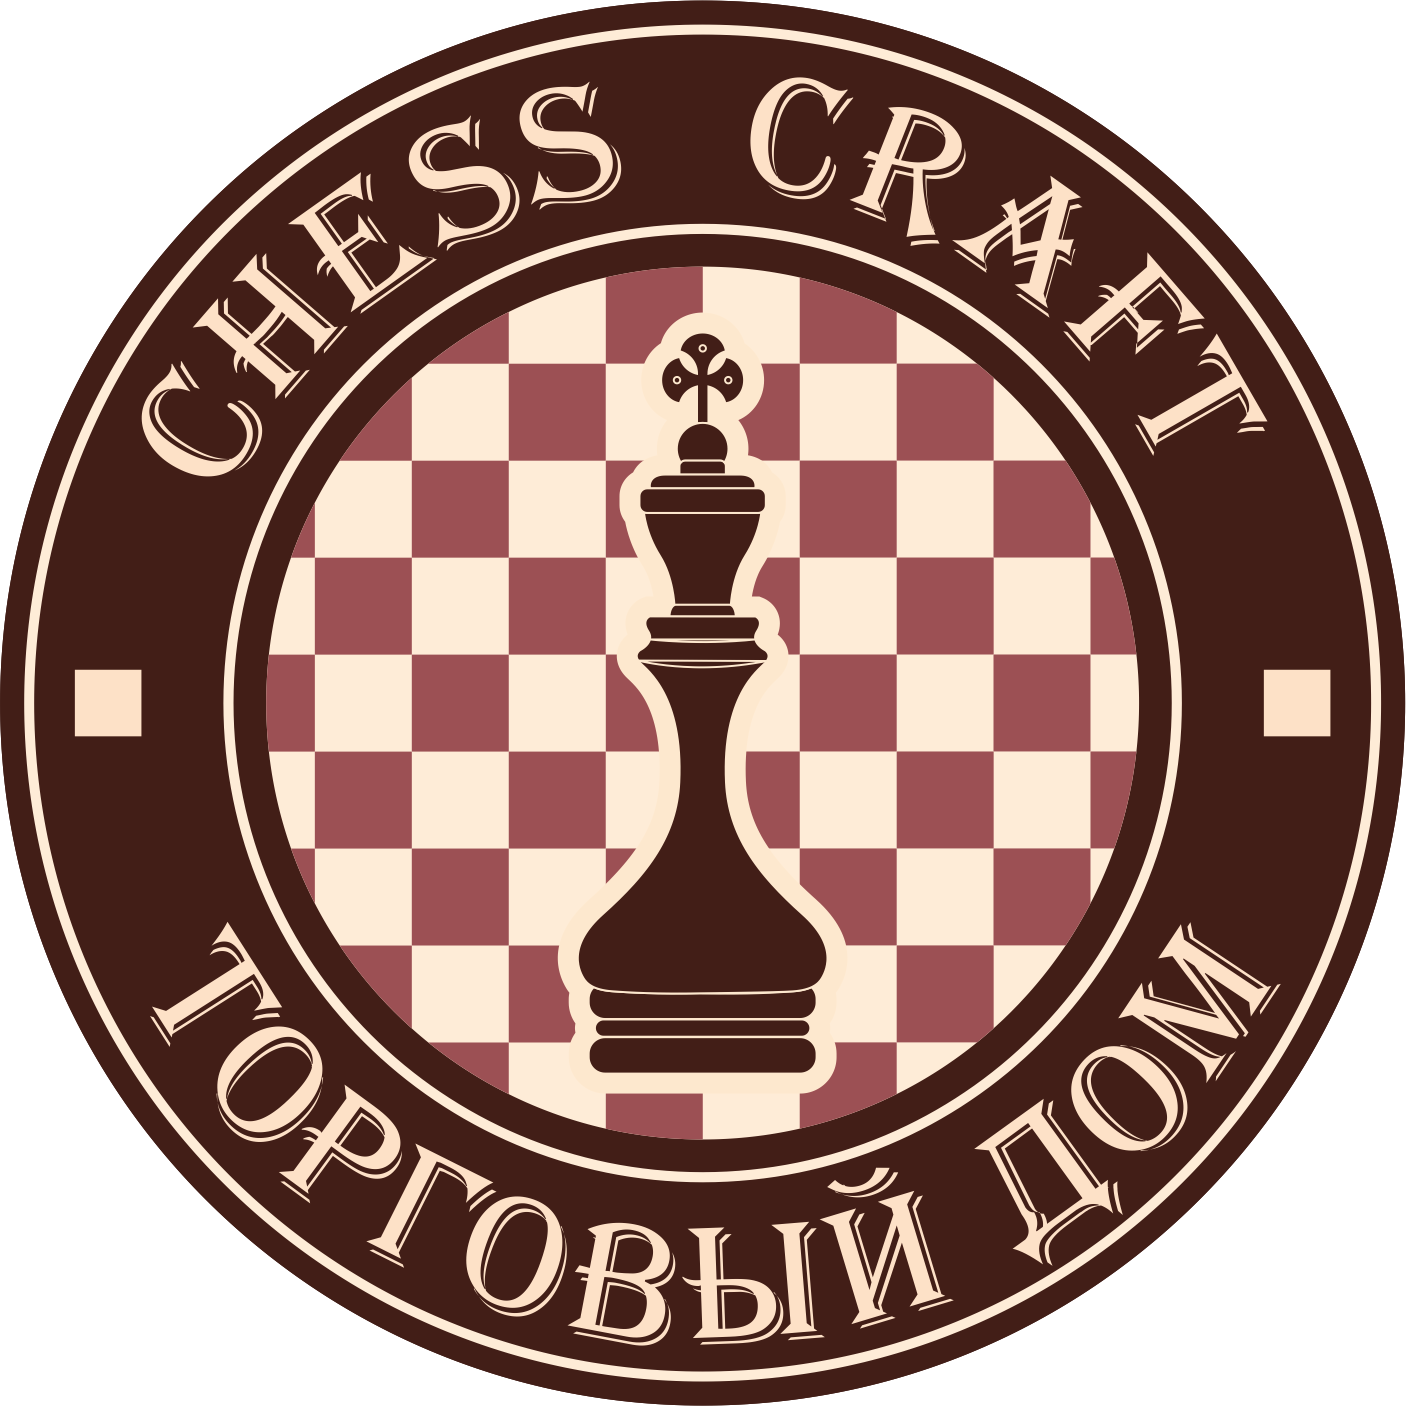 Trading House Chess Craft